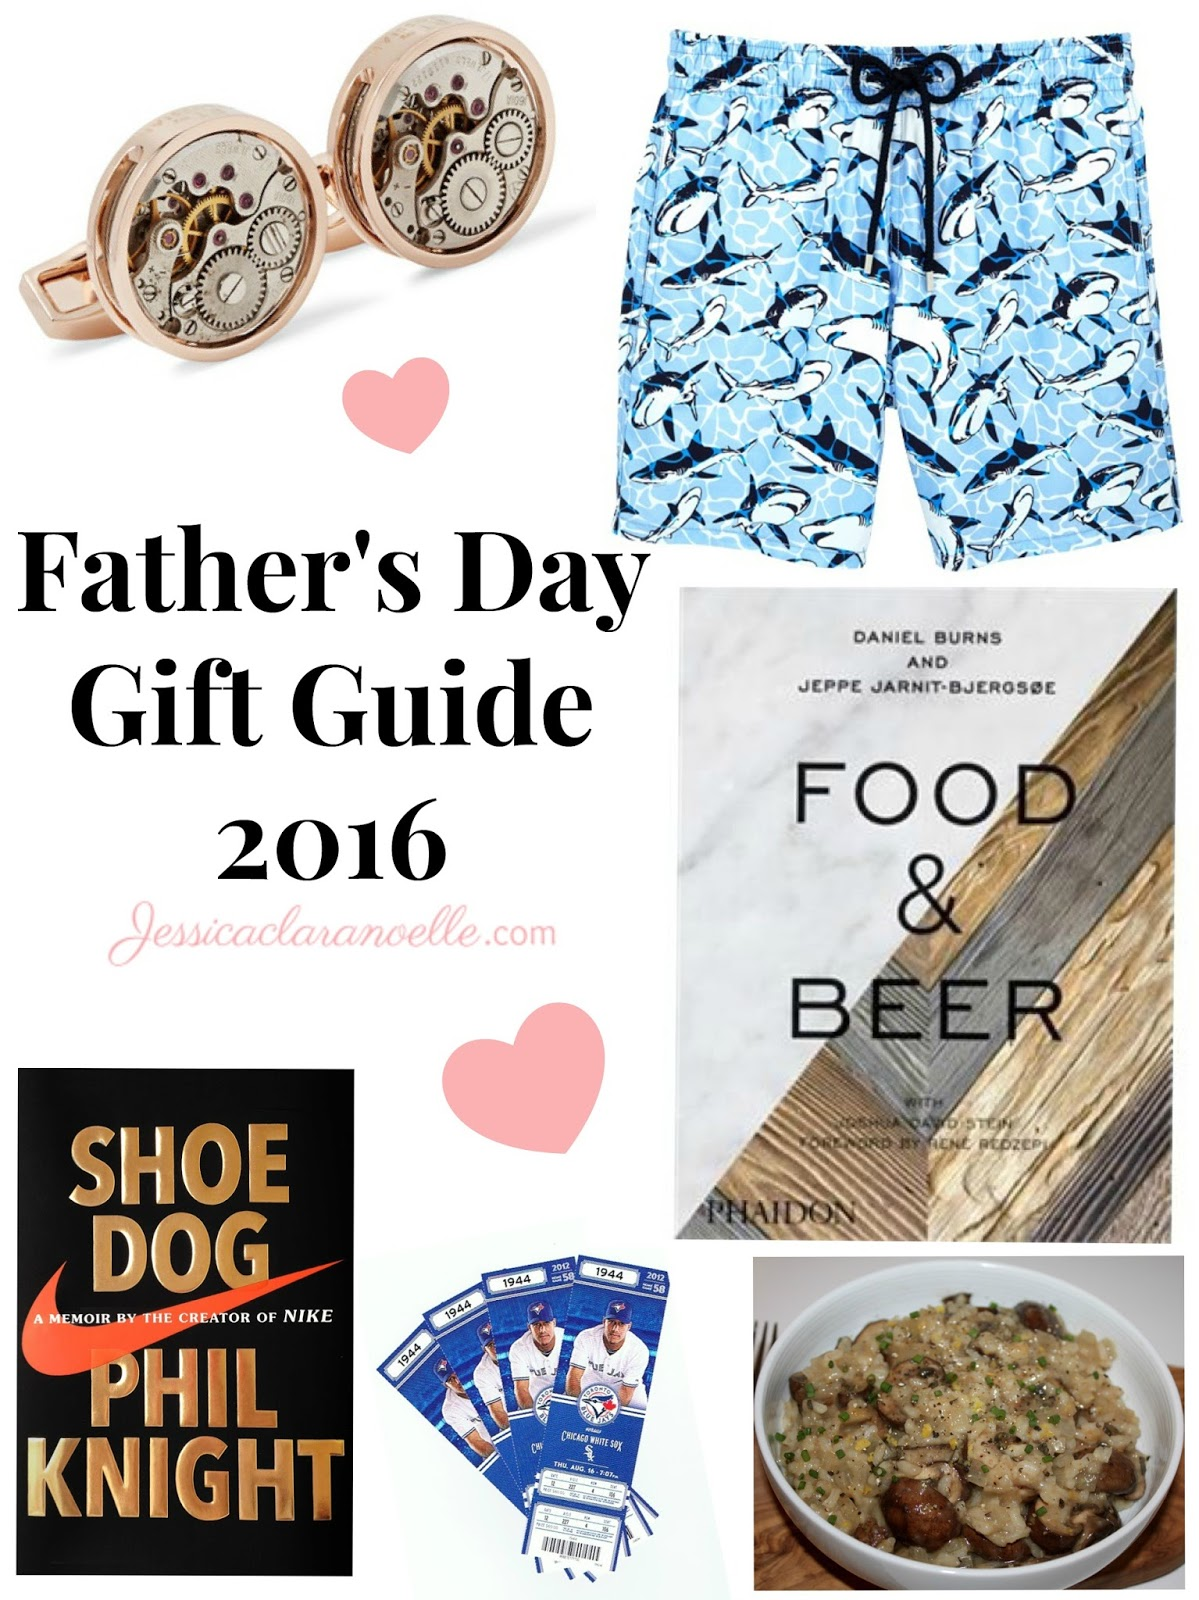 Father's Day 2016 Gift Guide featuring books (Shoe Dog by Phil Knight and Food & Beer by Daniel Burns), risotto recipe, Vilebrequin swim trunks, and Blue Jays sports tickets